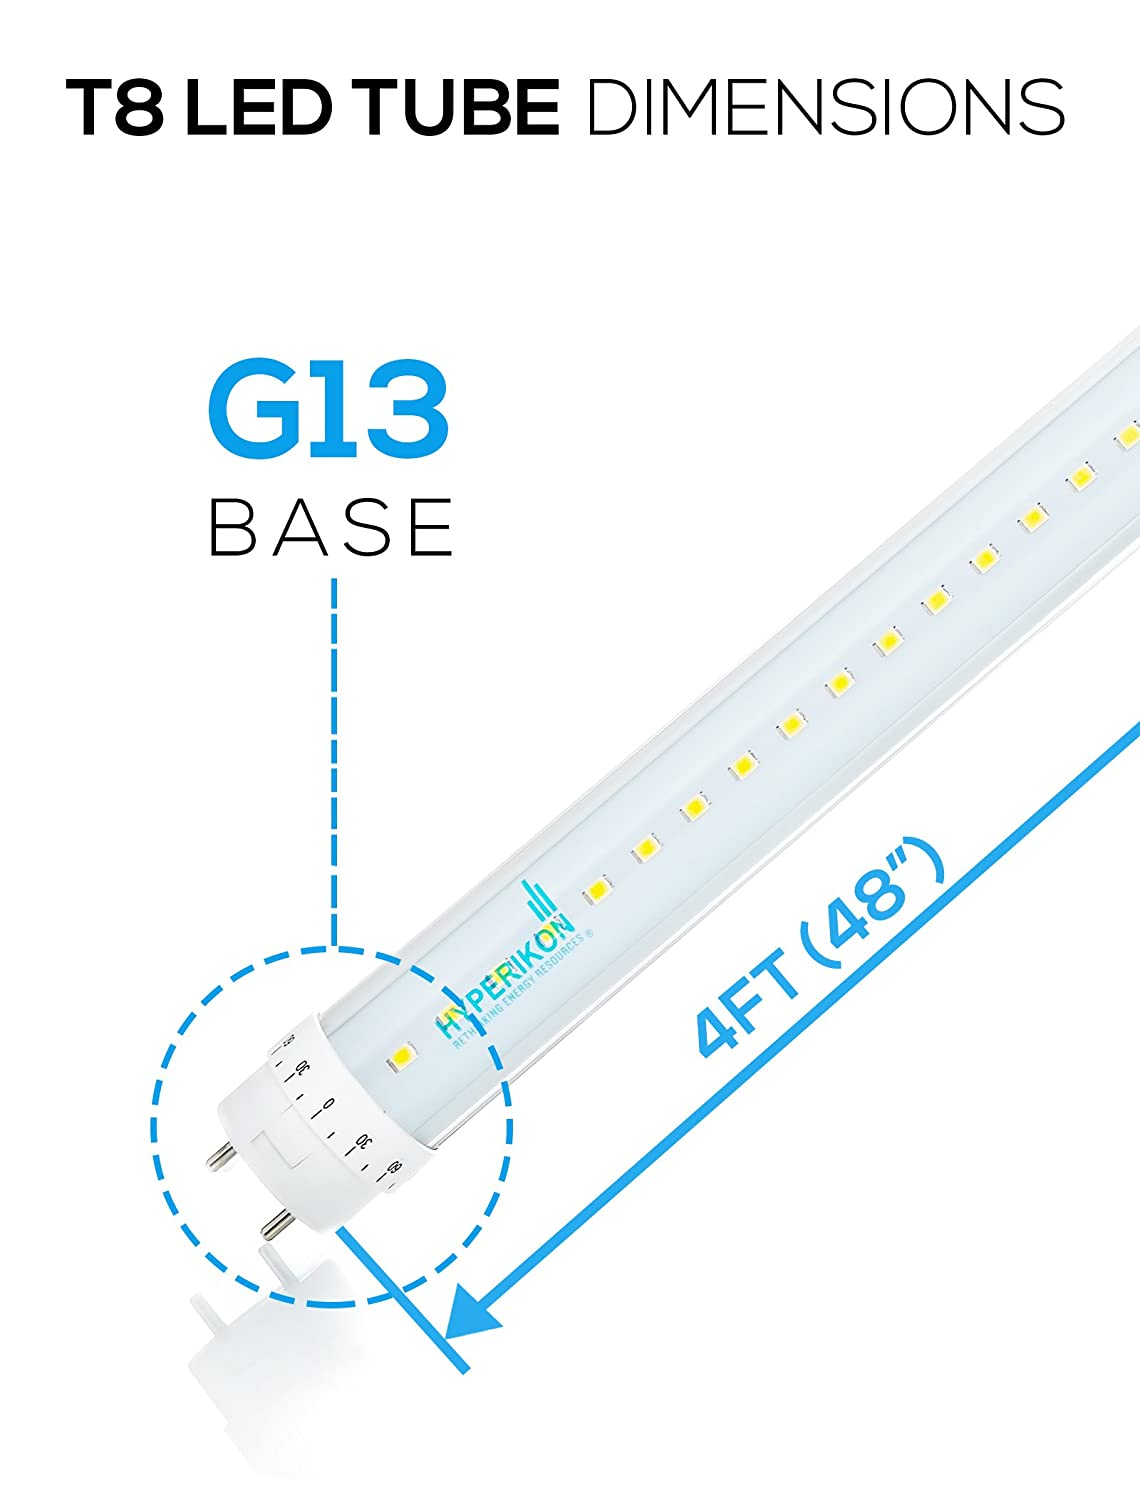 Hyperikon 4 Pack Of T8 Led Light Tube Rotatable End Caps 4ft 18w Wiring Diagram Free Picture 36w Equivalent 5000k Crystal White Glow Dual Powered Clear 1 Line Garage